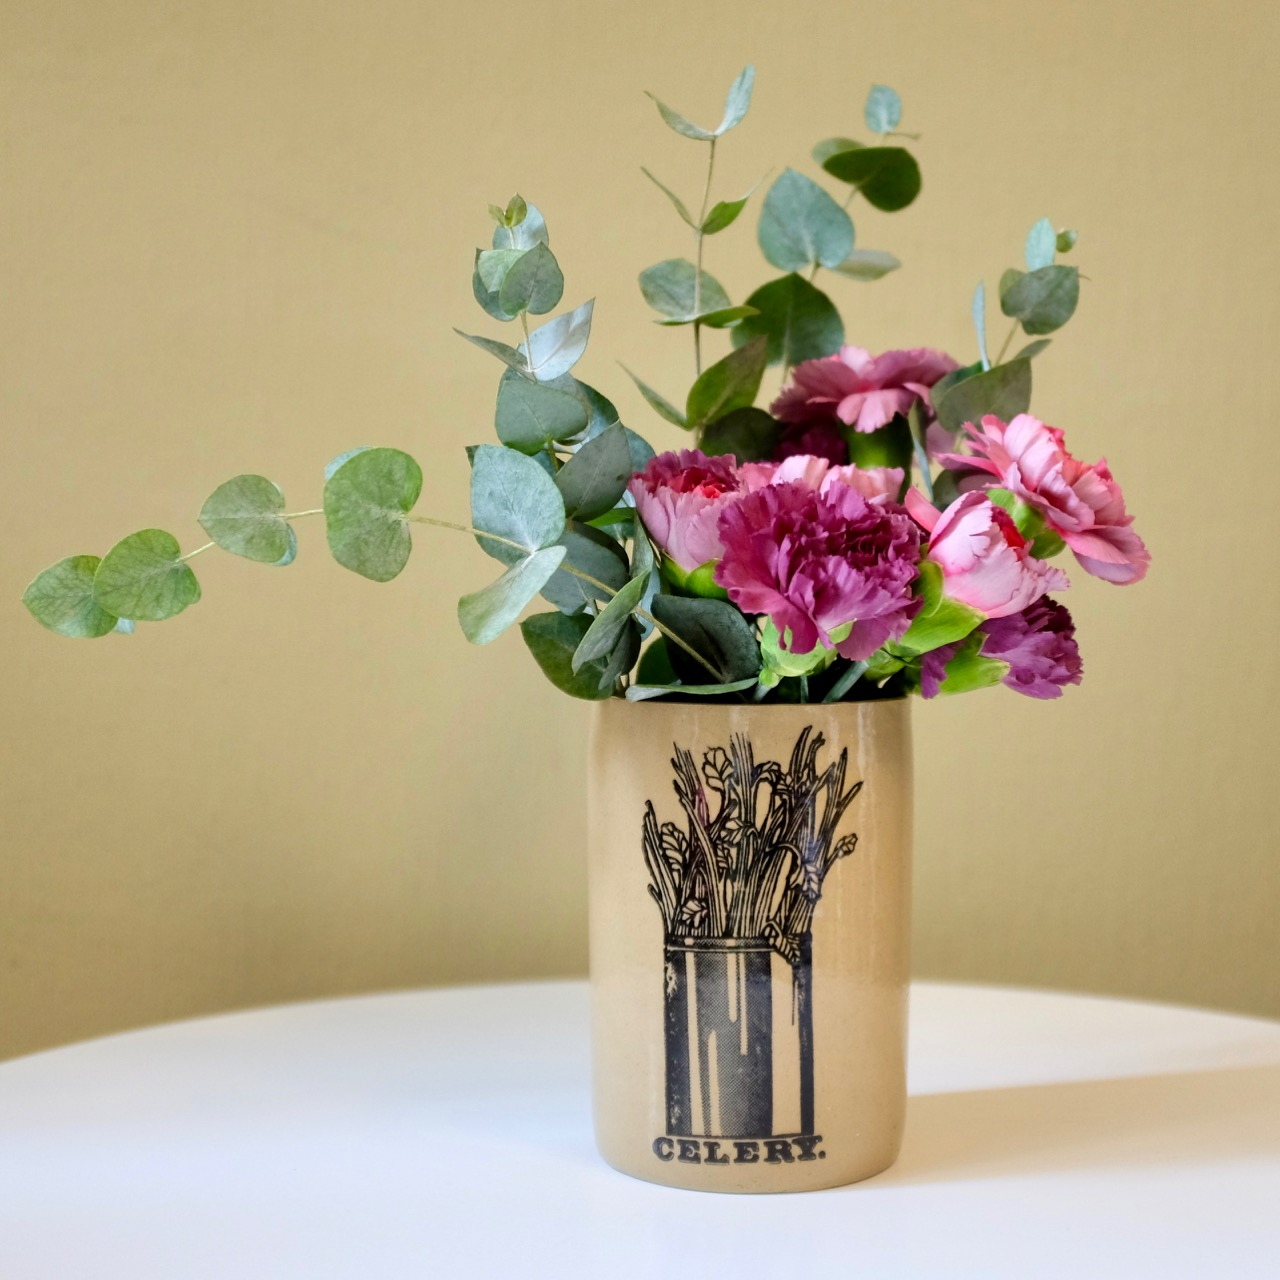 Carnations and eucalyptus